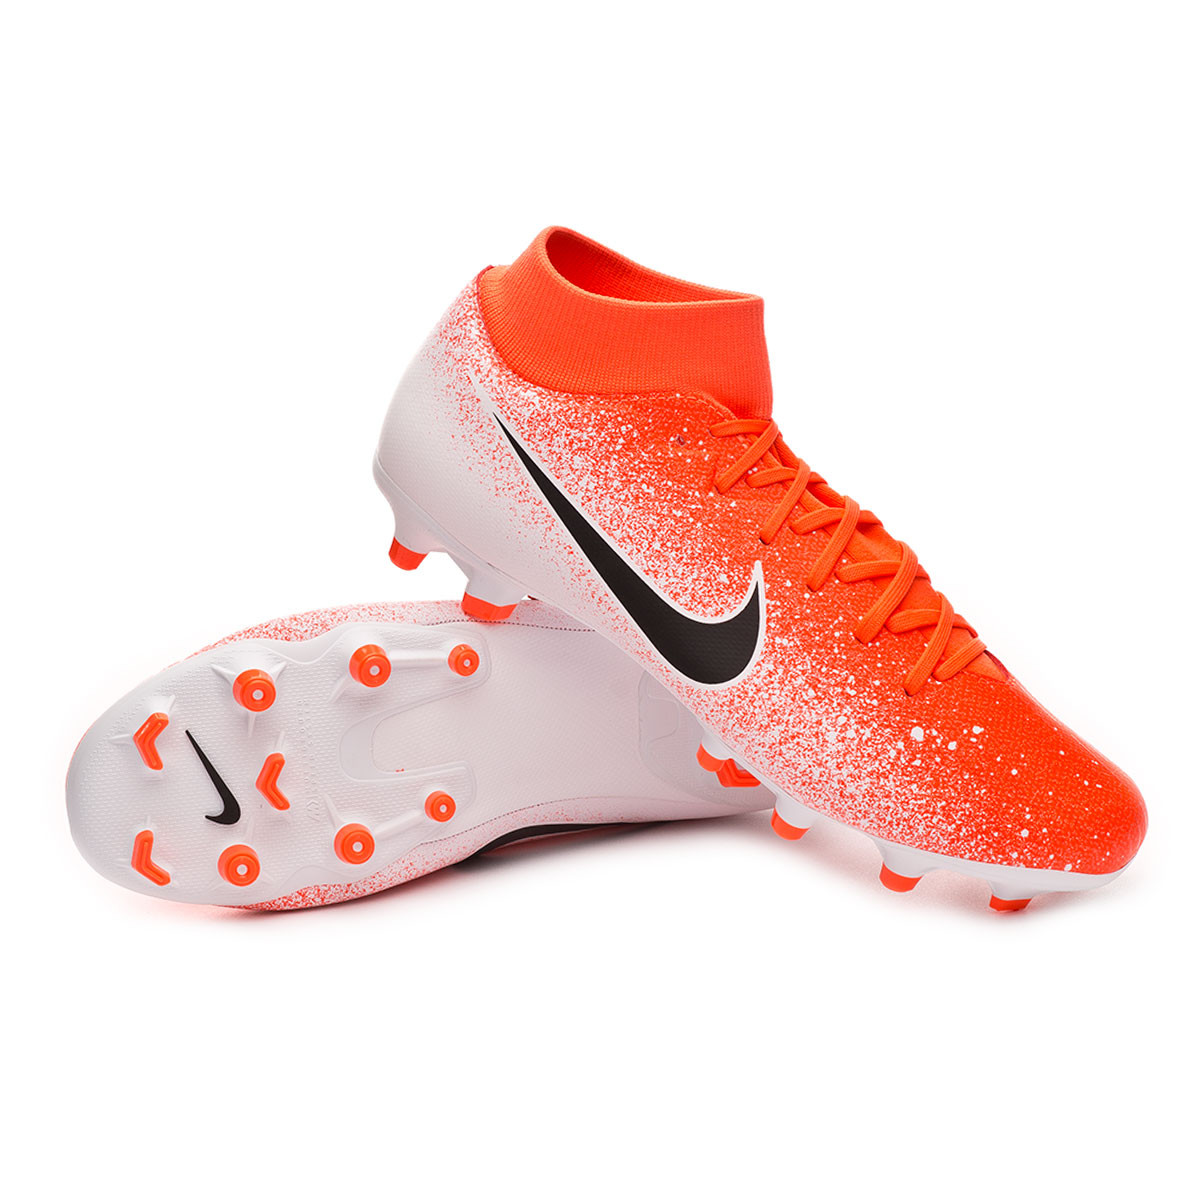 bfbf07aa0fb8d Football Boots Nike Mercurial Superfly VI Academy MG Hyper crimson-Black- White - Football store Fútbol Emotion